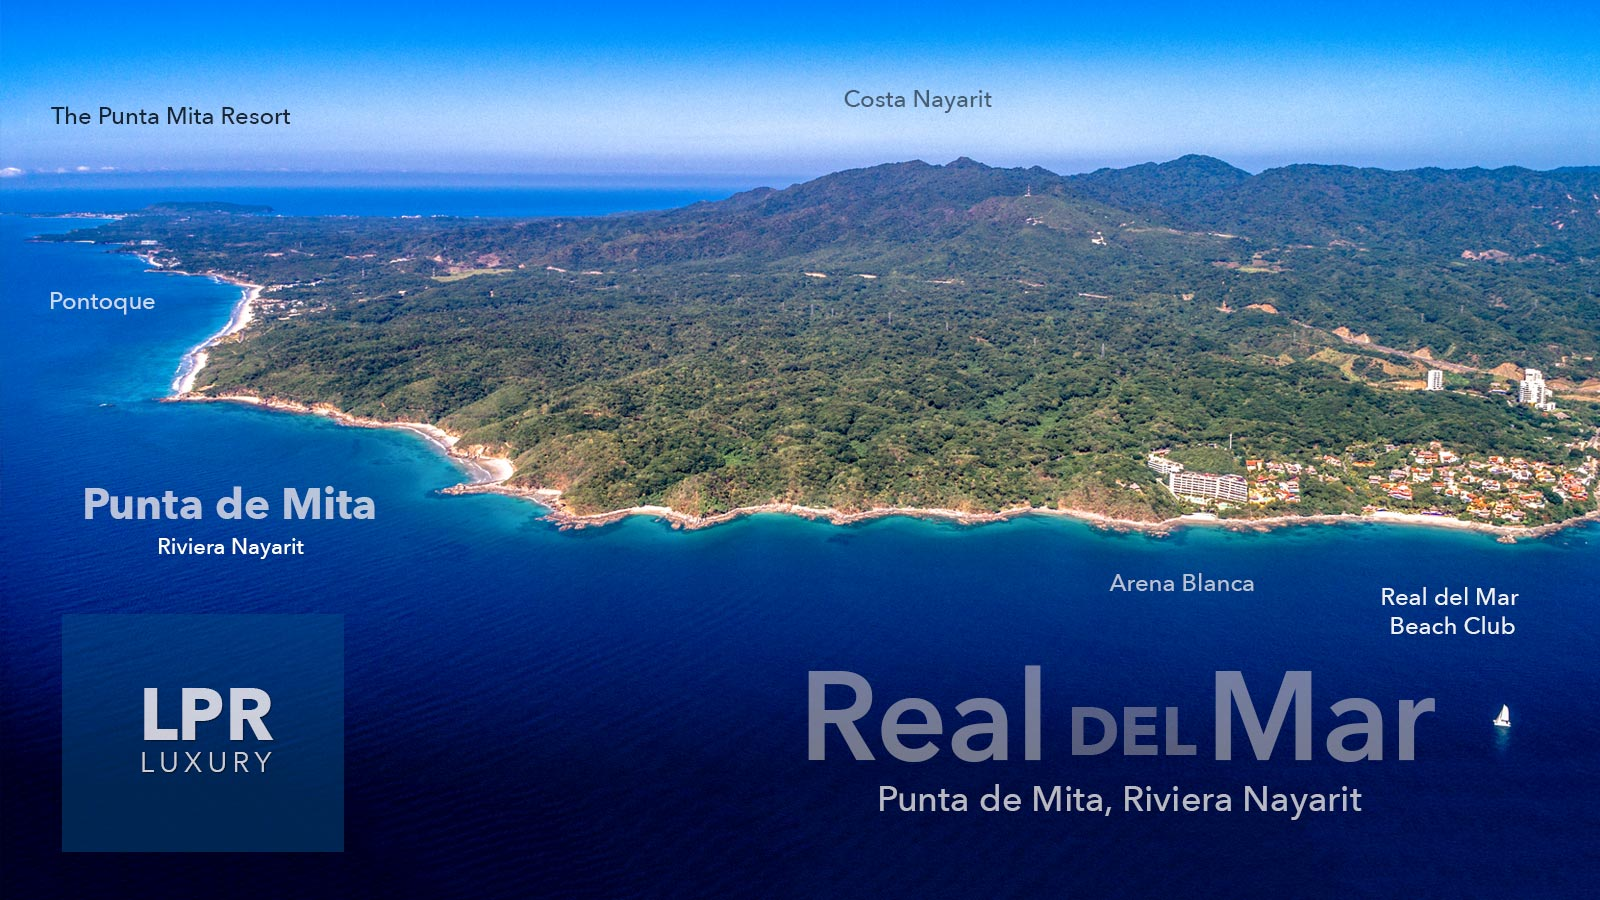 Real del Mar - North shore Puerto Vallarta luxury real estate and vacation rentals - Riviera Nayarit, Mexico